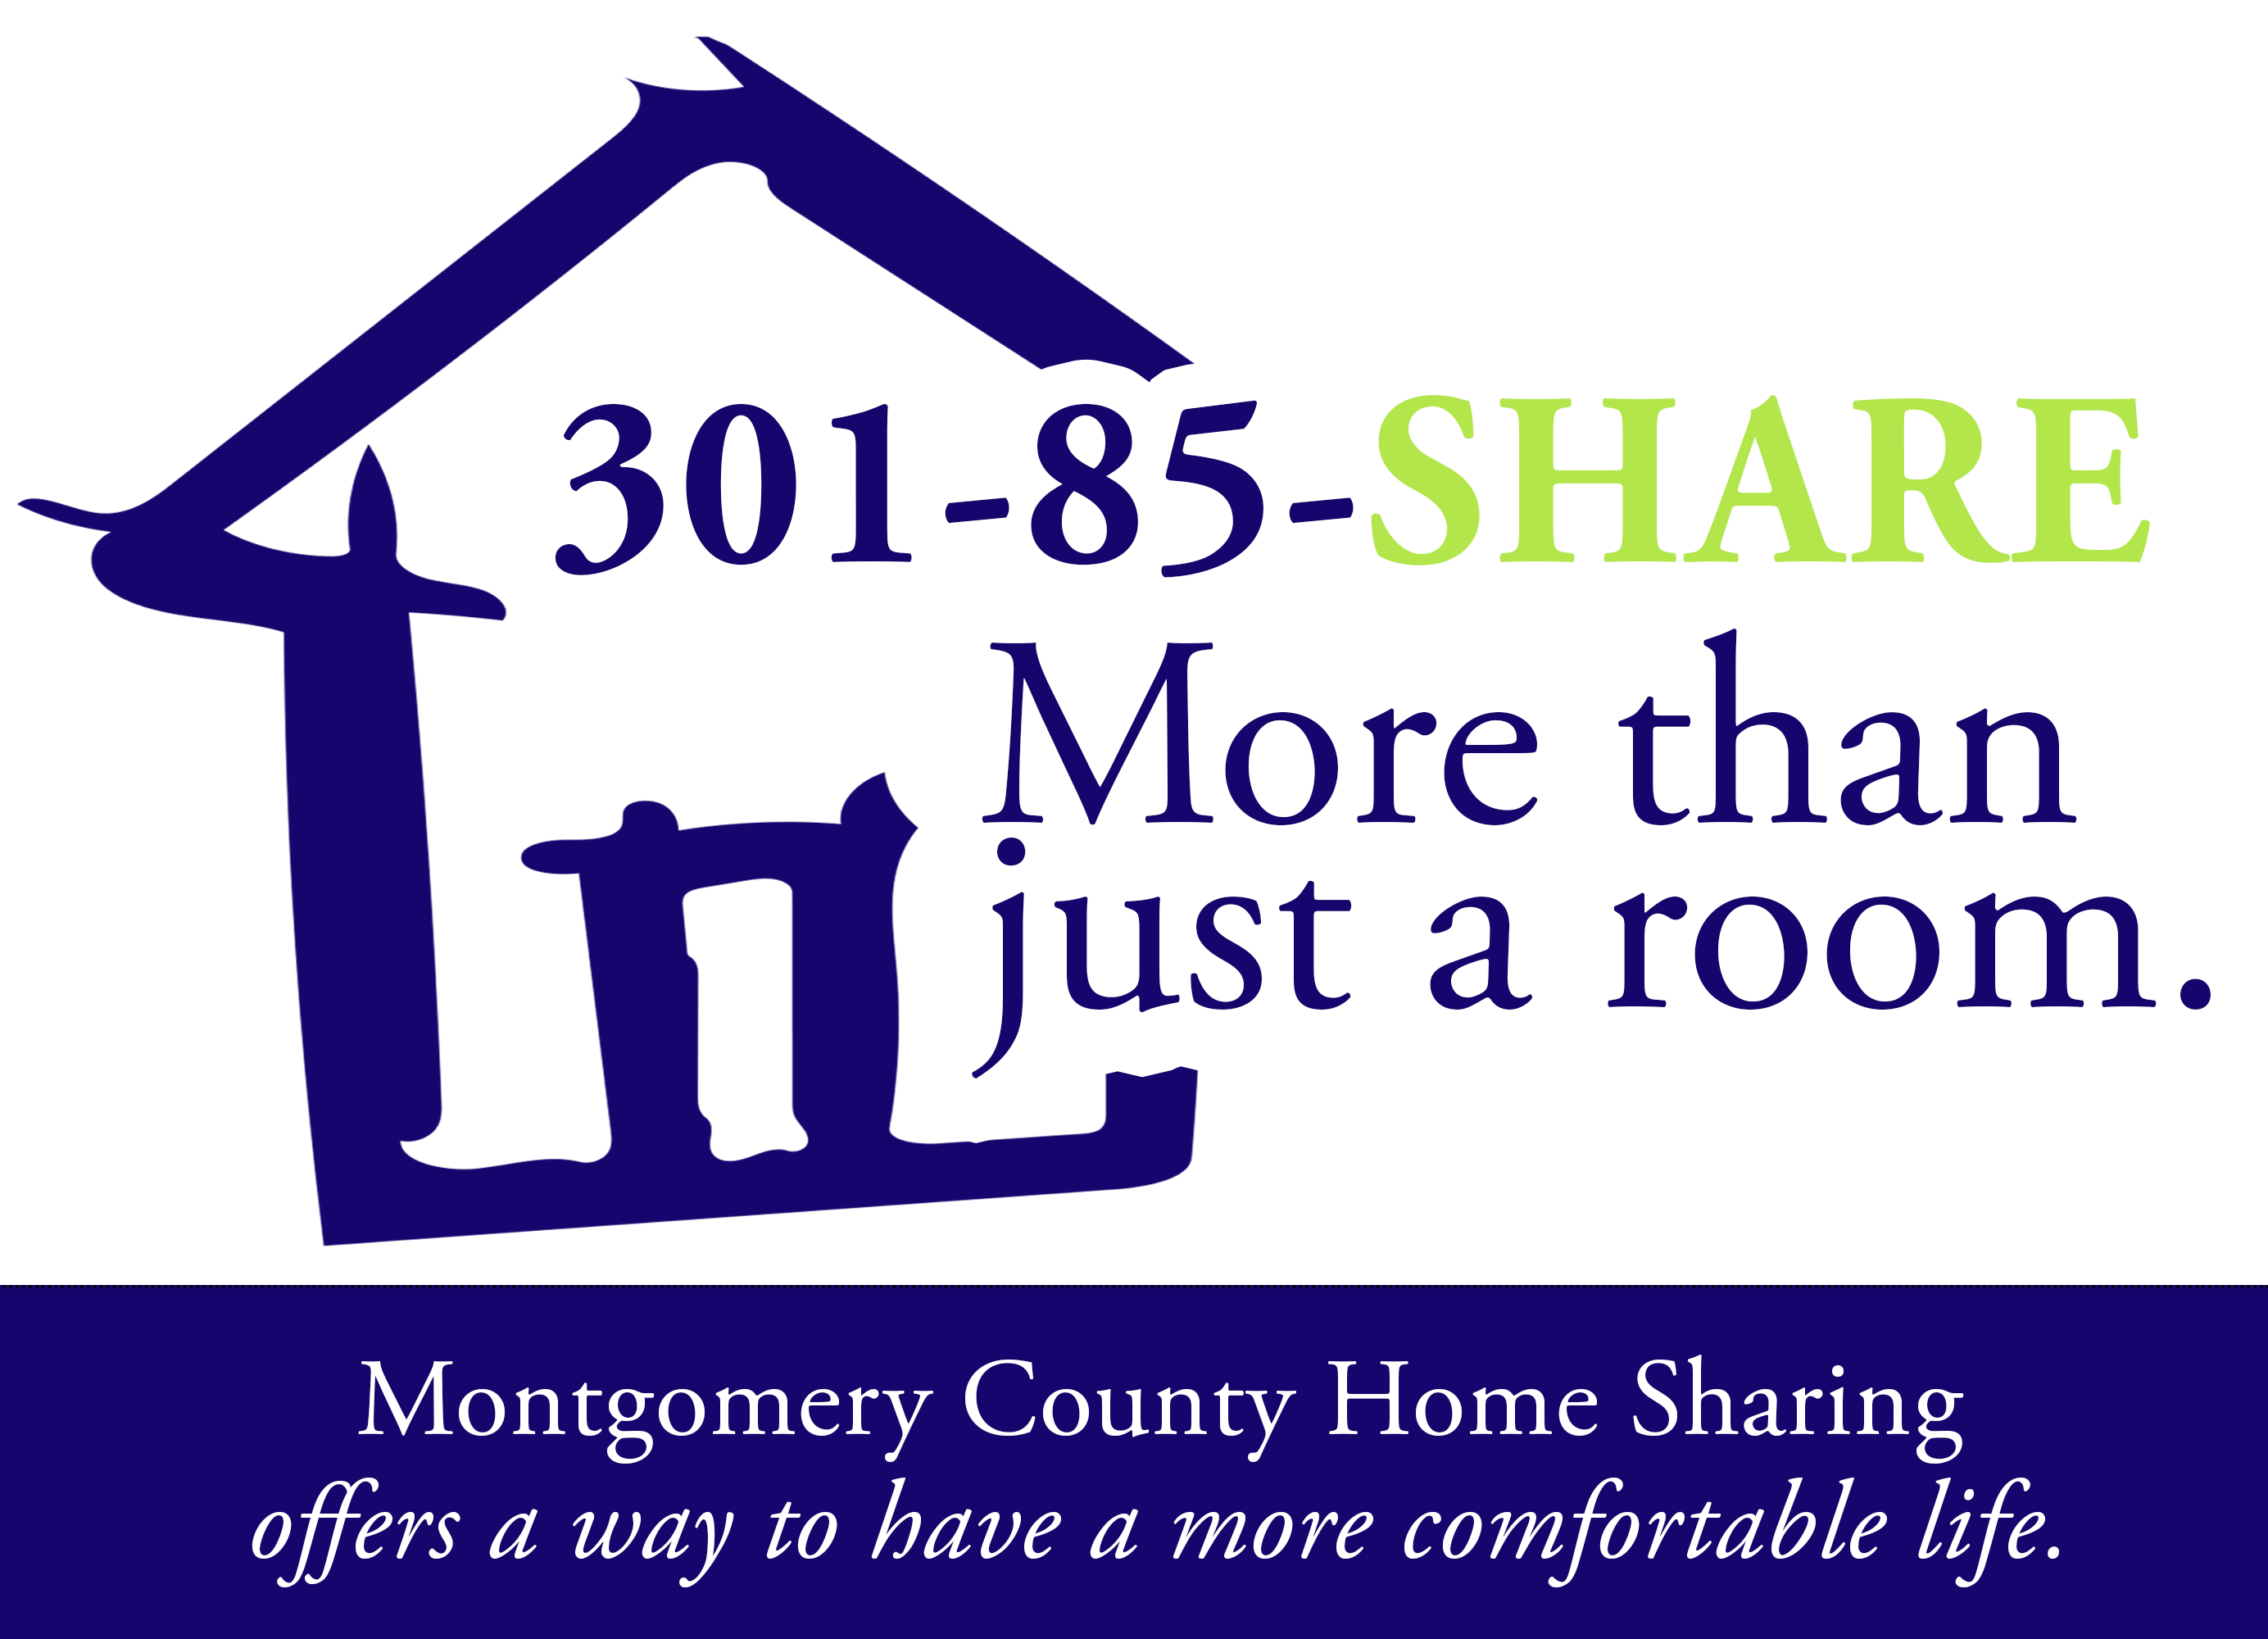 Montgomery County Home Sharing